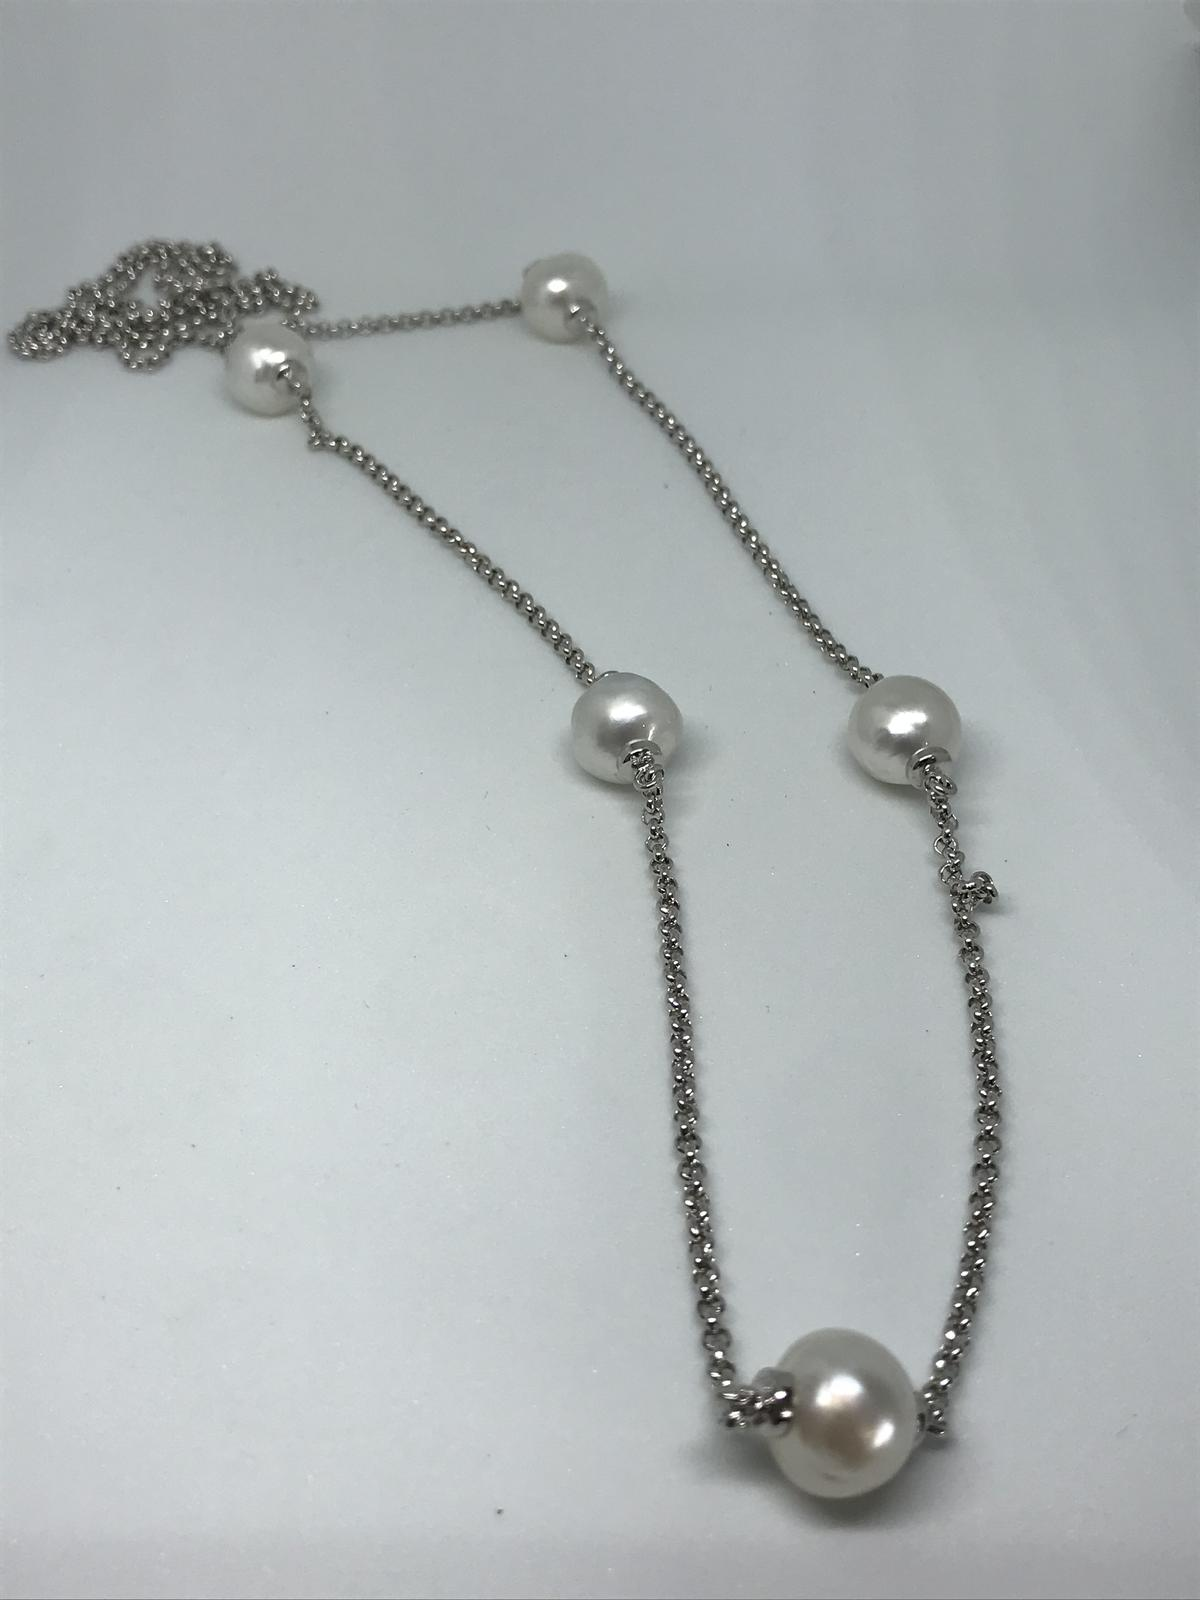 5 x Broome pearls set on 90cm rhodium plated 925 belcher chain.